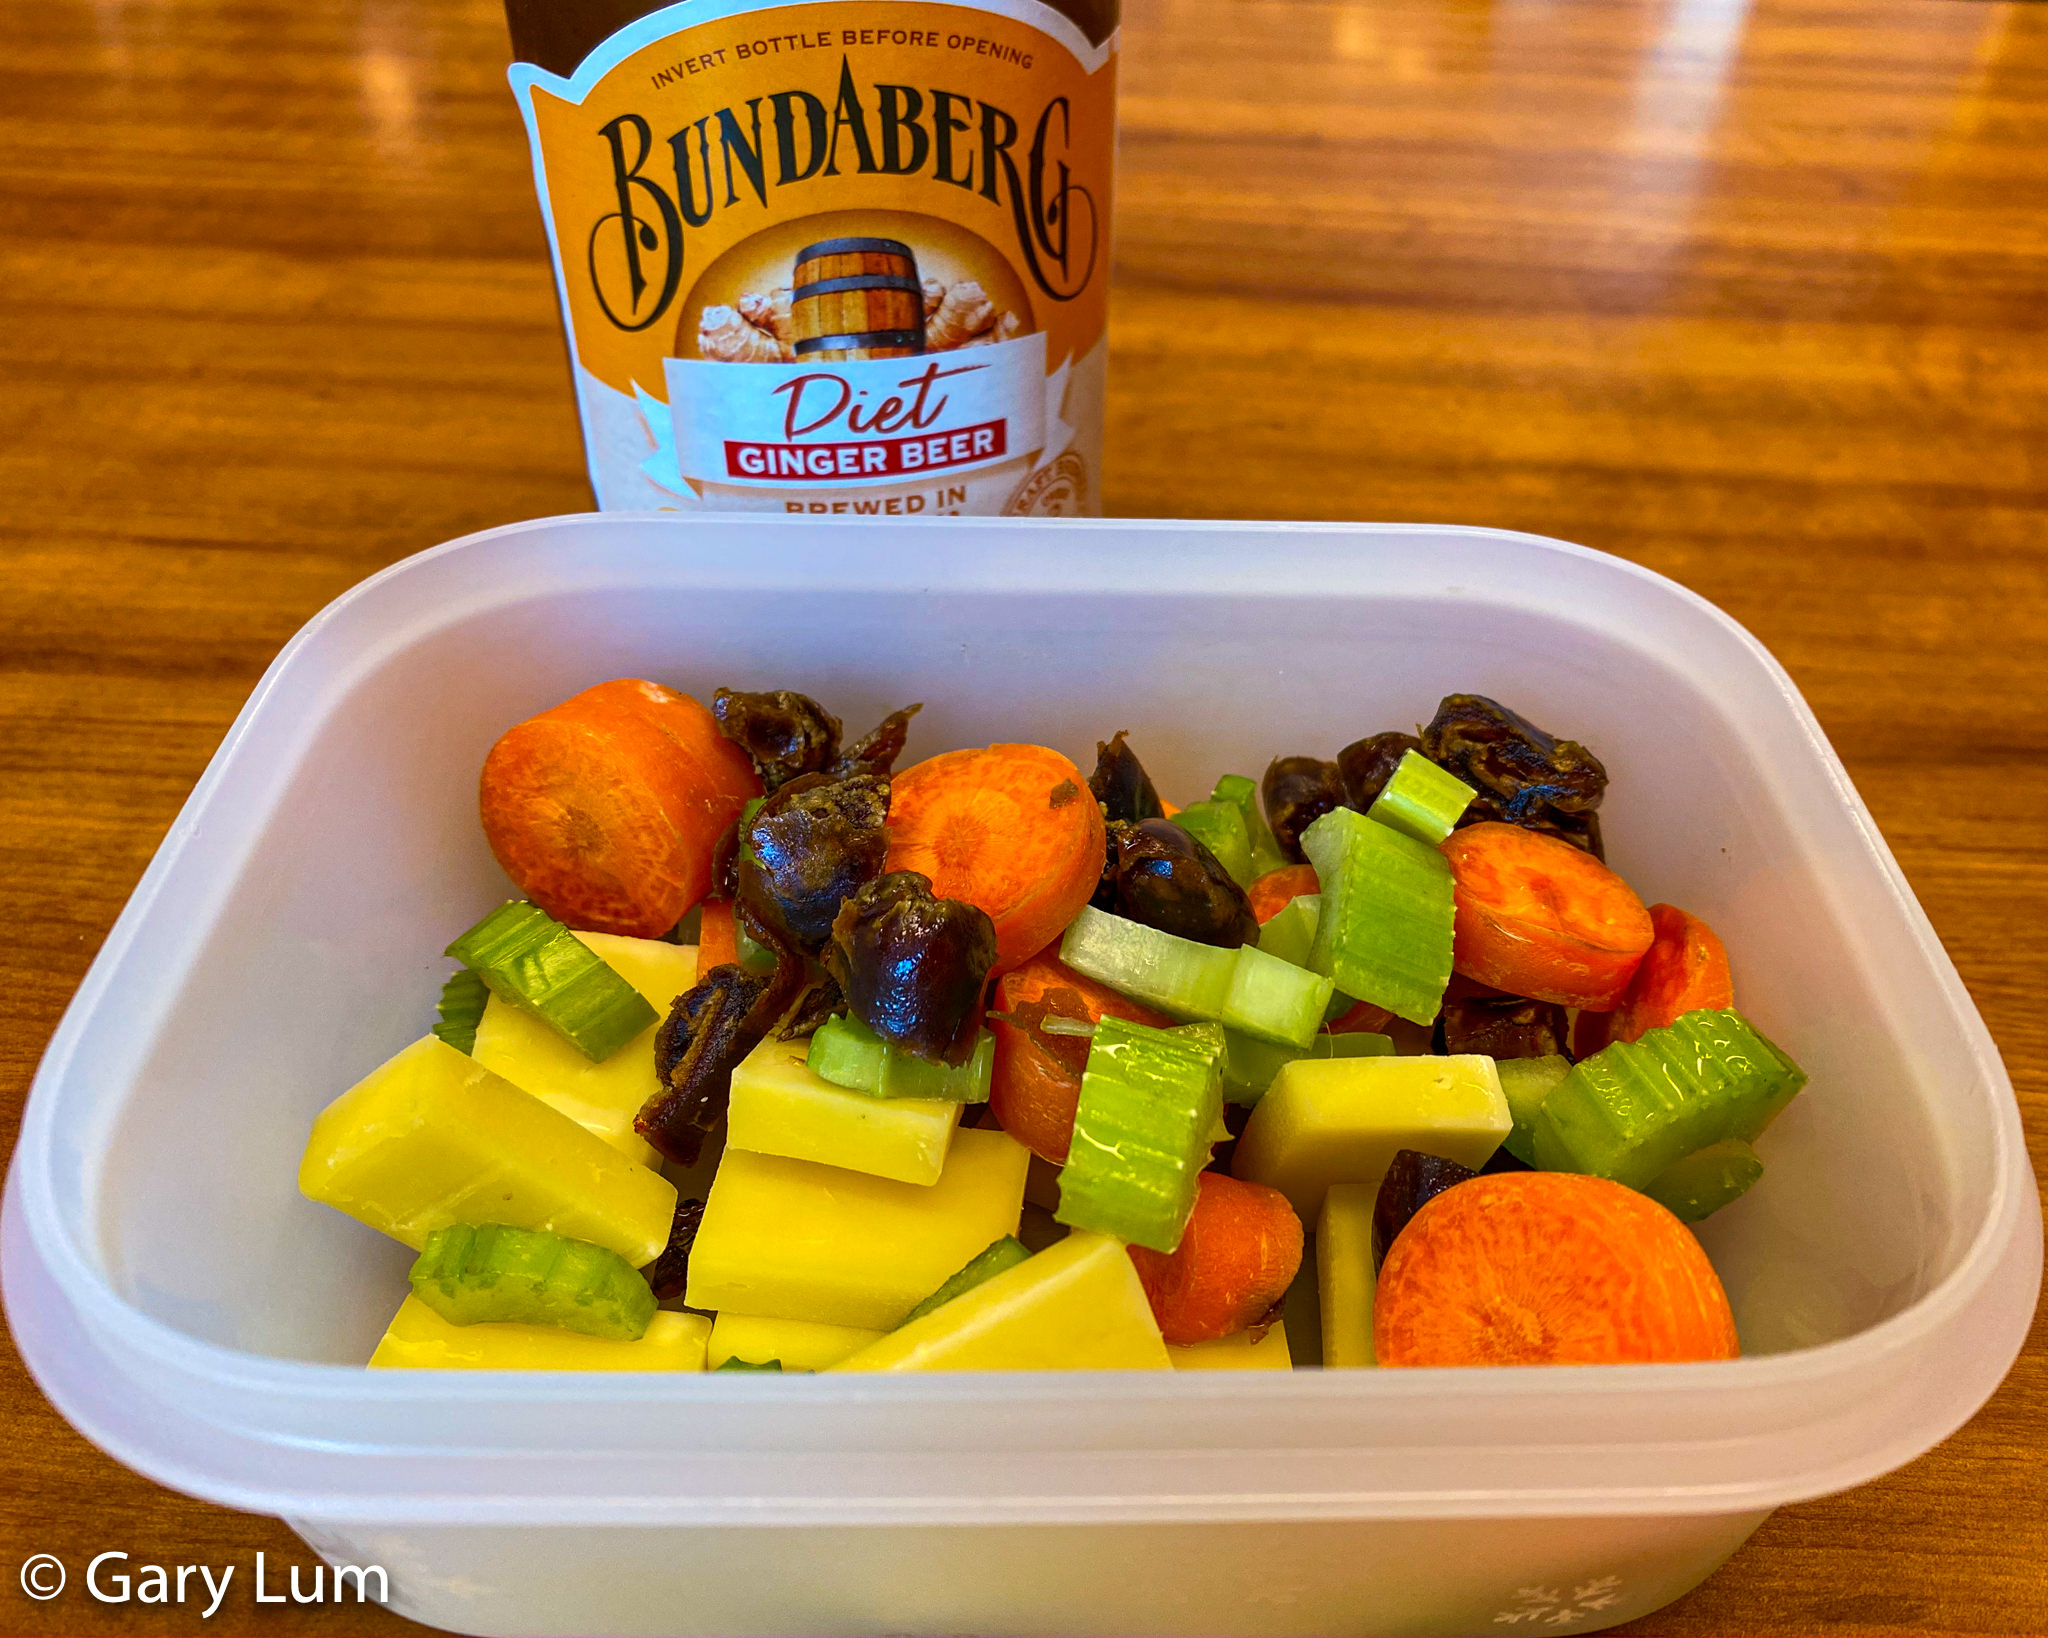 Sliced carrot, celery, cheese, and dates with Bundaberg Diet Ginger beer. Gary Lum.